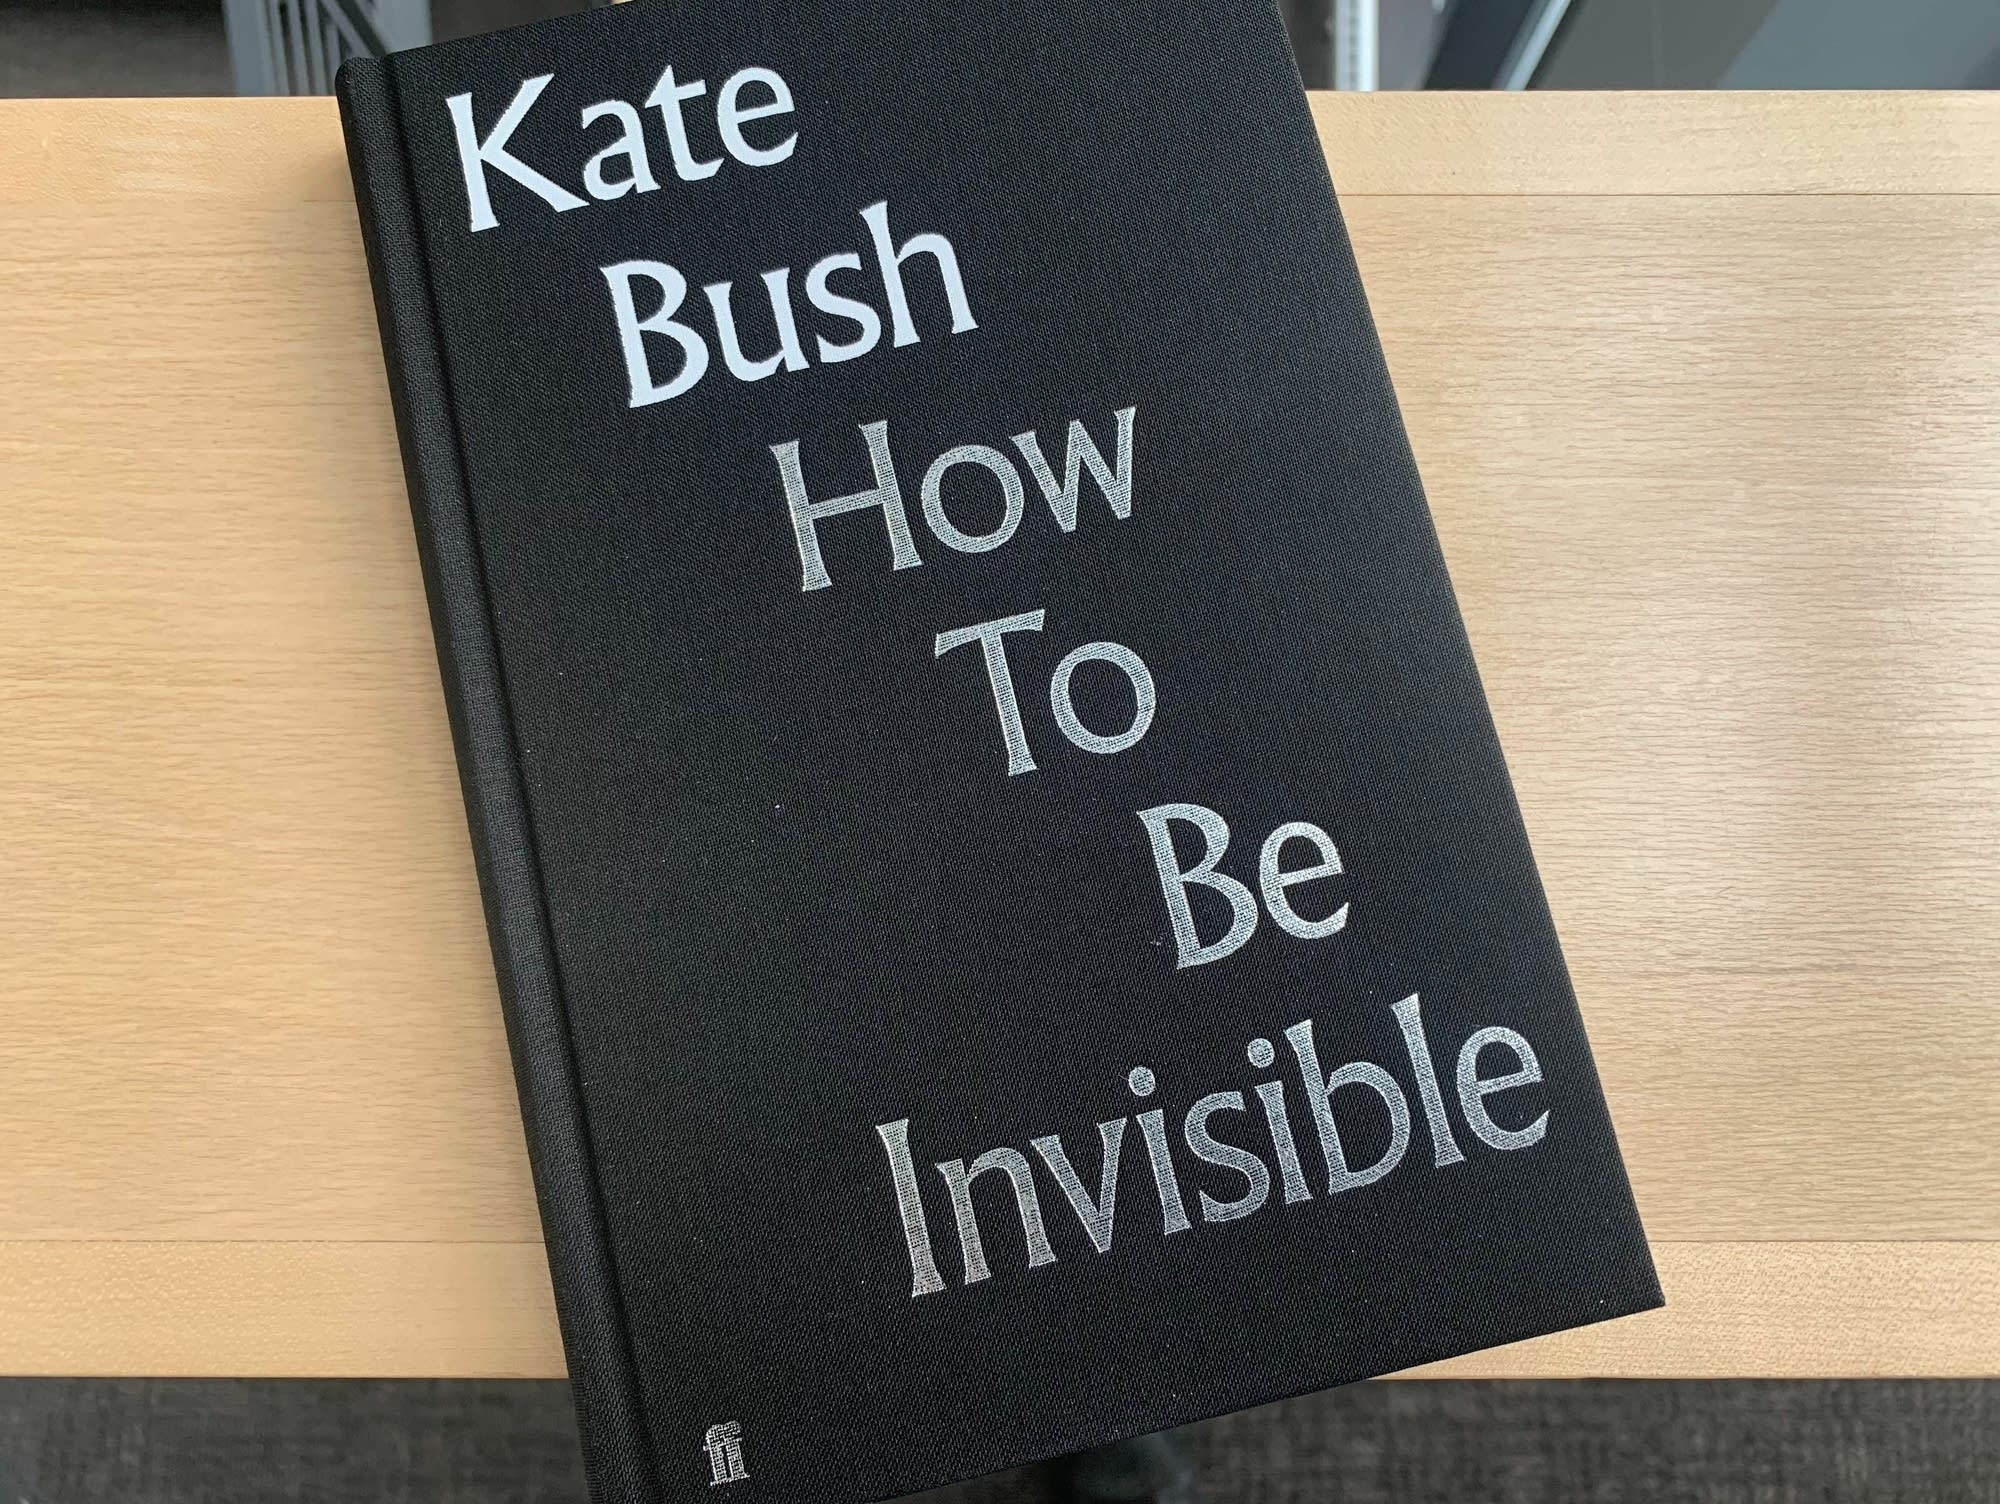 Rock And Roll Book Club How To Be Invisible Collects Kate Bush Lyrics The Current